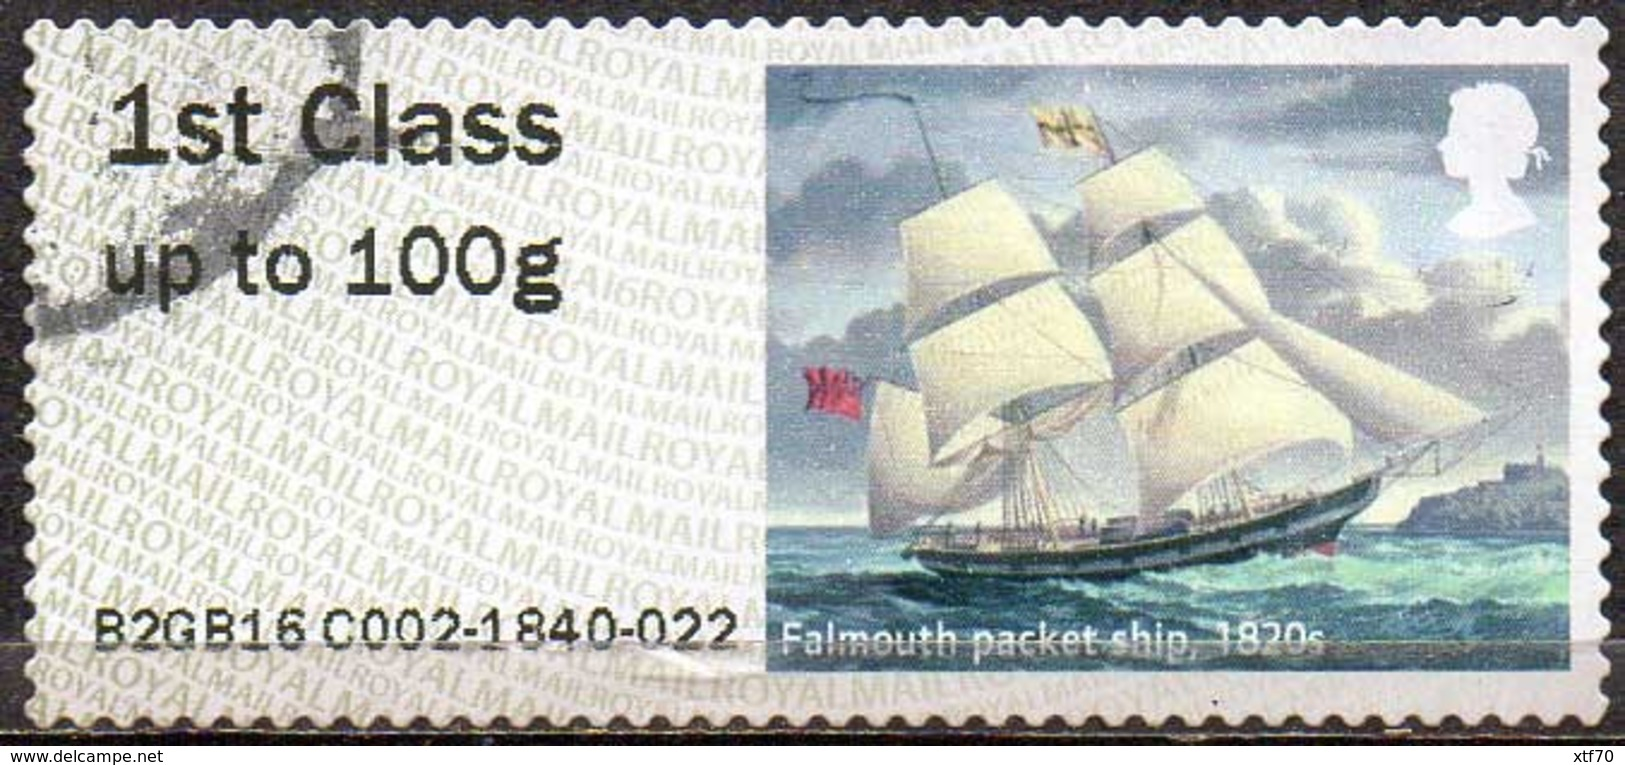 GREAT BRITAIN 2016 Post & Go: Royal Mail Heritage. Transport. Falmouth Packet Ship, 1820s - Post & Go Stamps